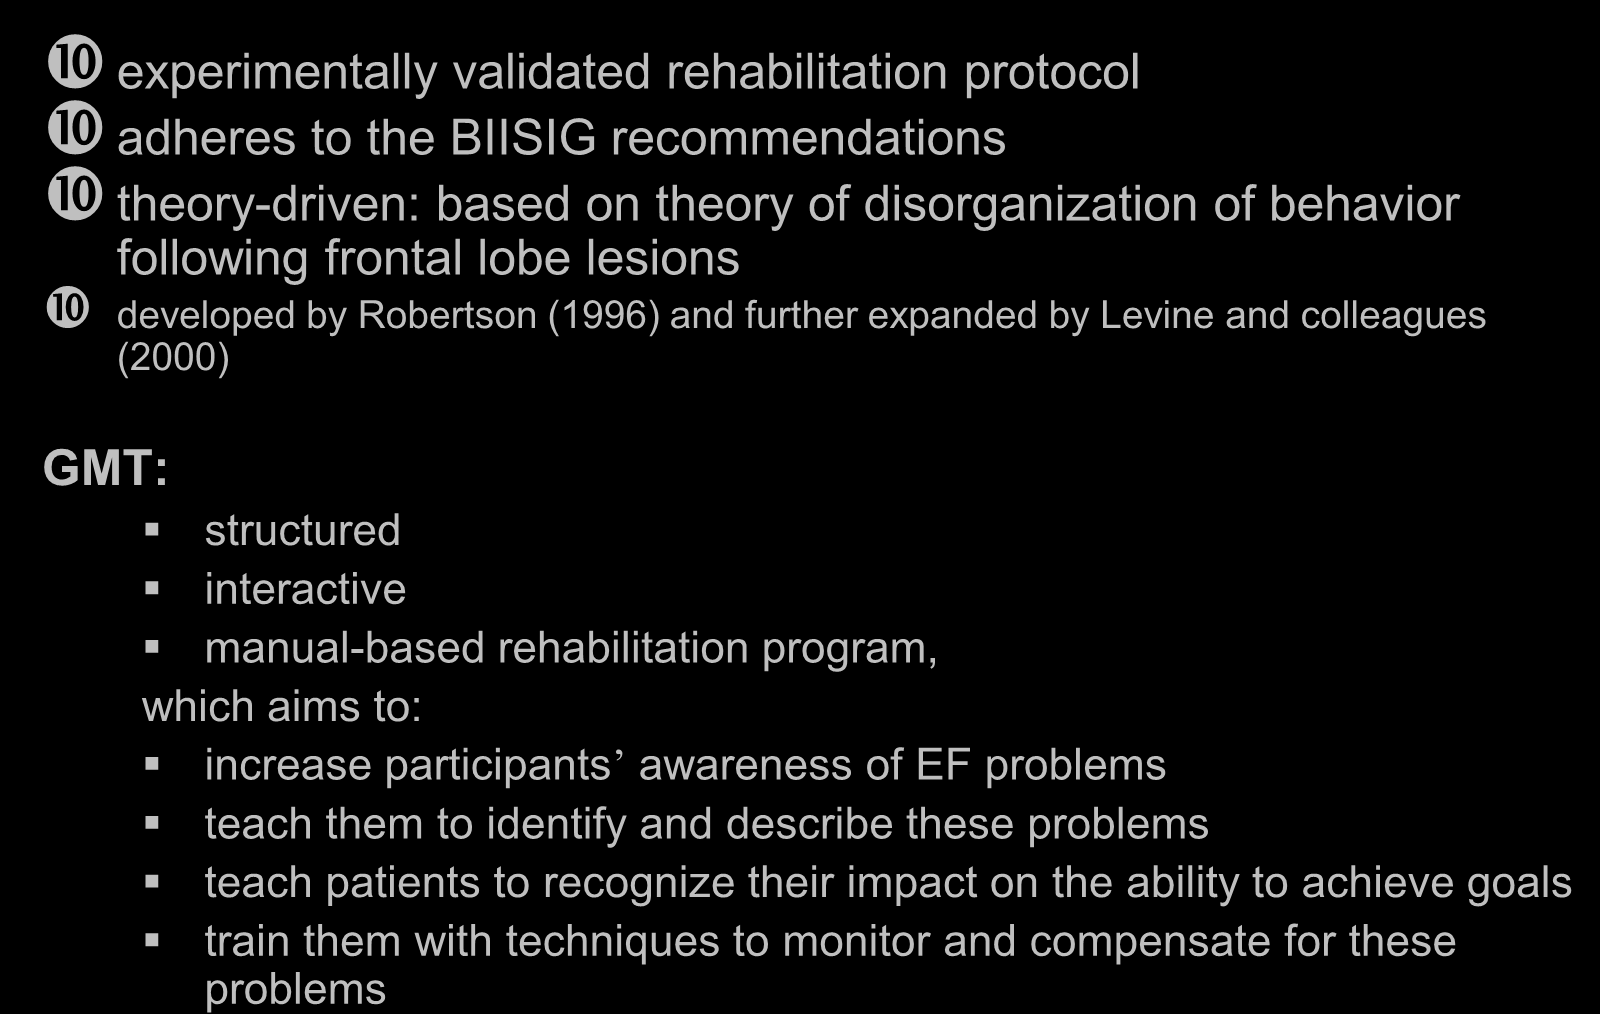 Goal Management Training (GMT) experimentally validated rehabilitation protocol adheres to the BIISIG recommendations theory-driven: based on theory of disorganization of behavior following frontal